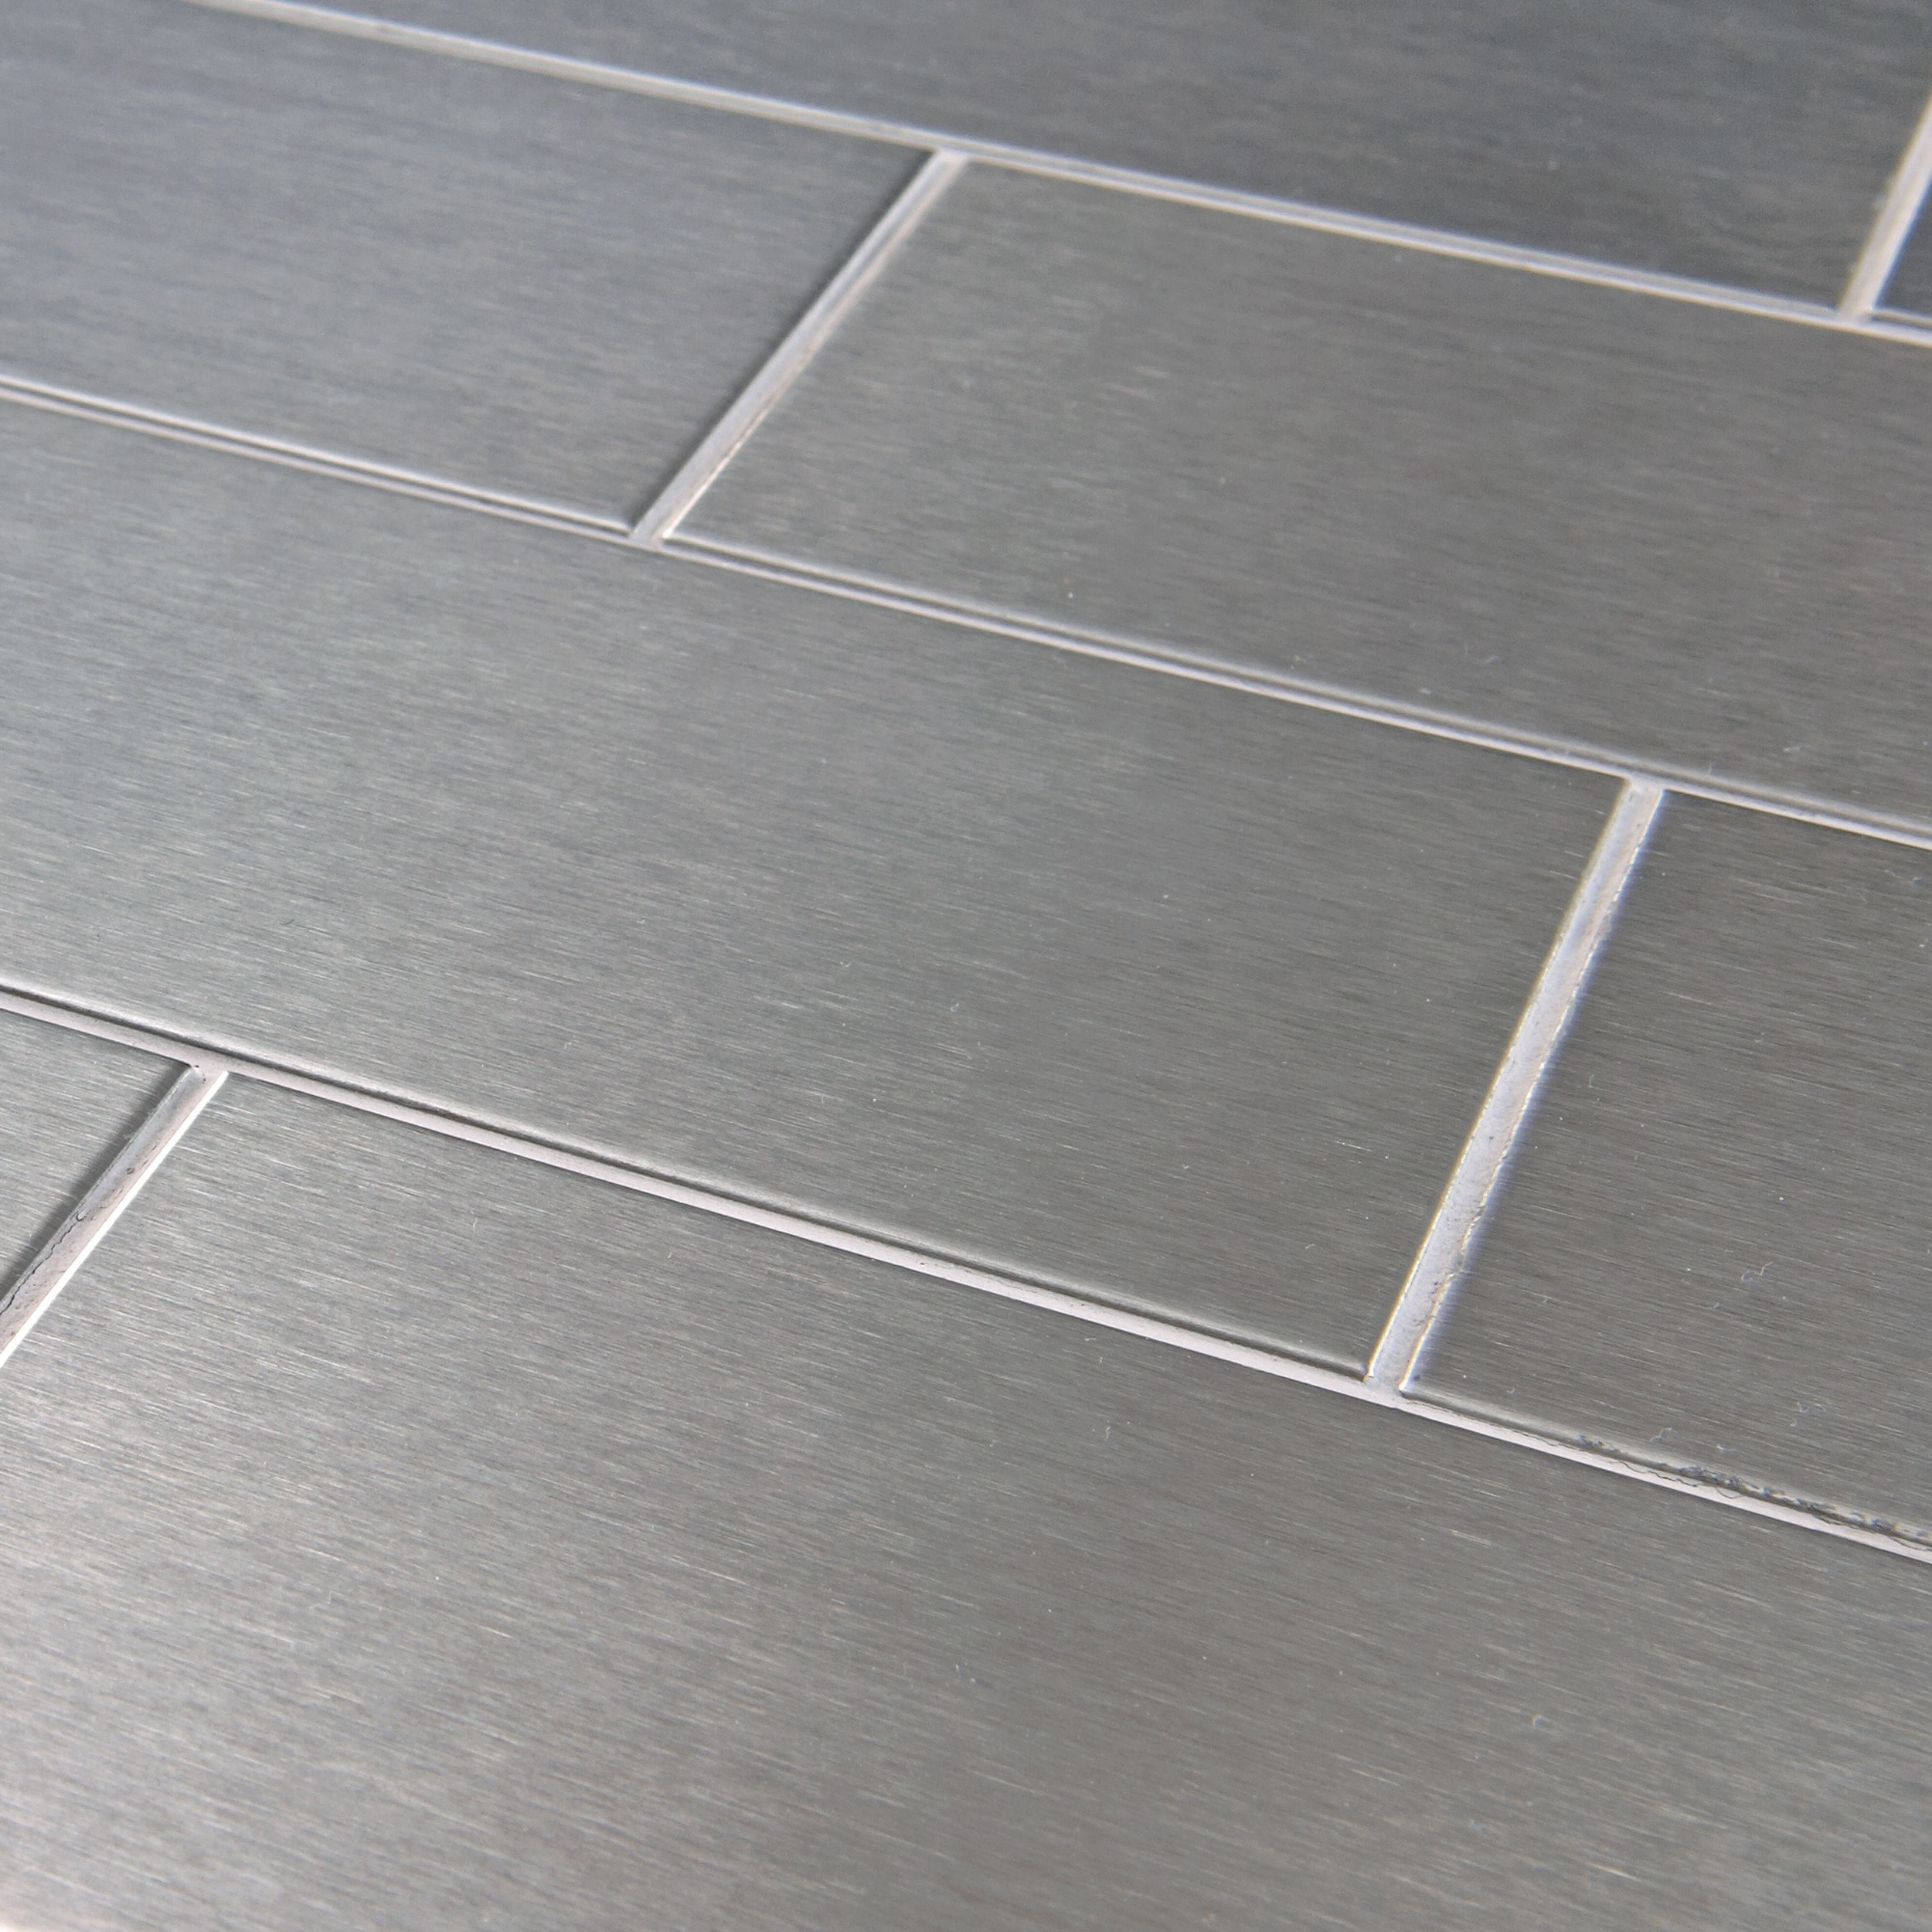 Somertile 3x6 inch alloy subway stainless steel over porcelain somertile 3x6 inch alloy subway stainless steel over porcelain mosaic wall tile 64 tiles8 sqft free shipping today overstock 12988840 dailygadgetfo Choice Image